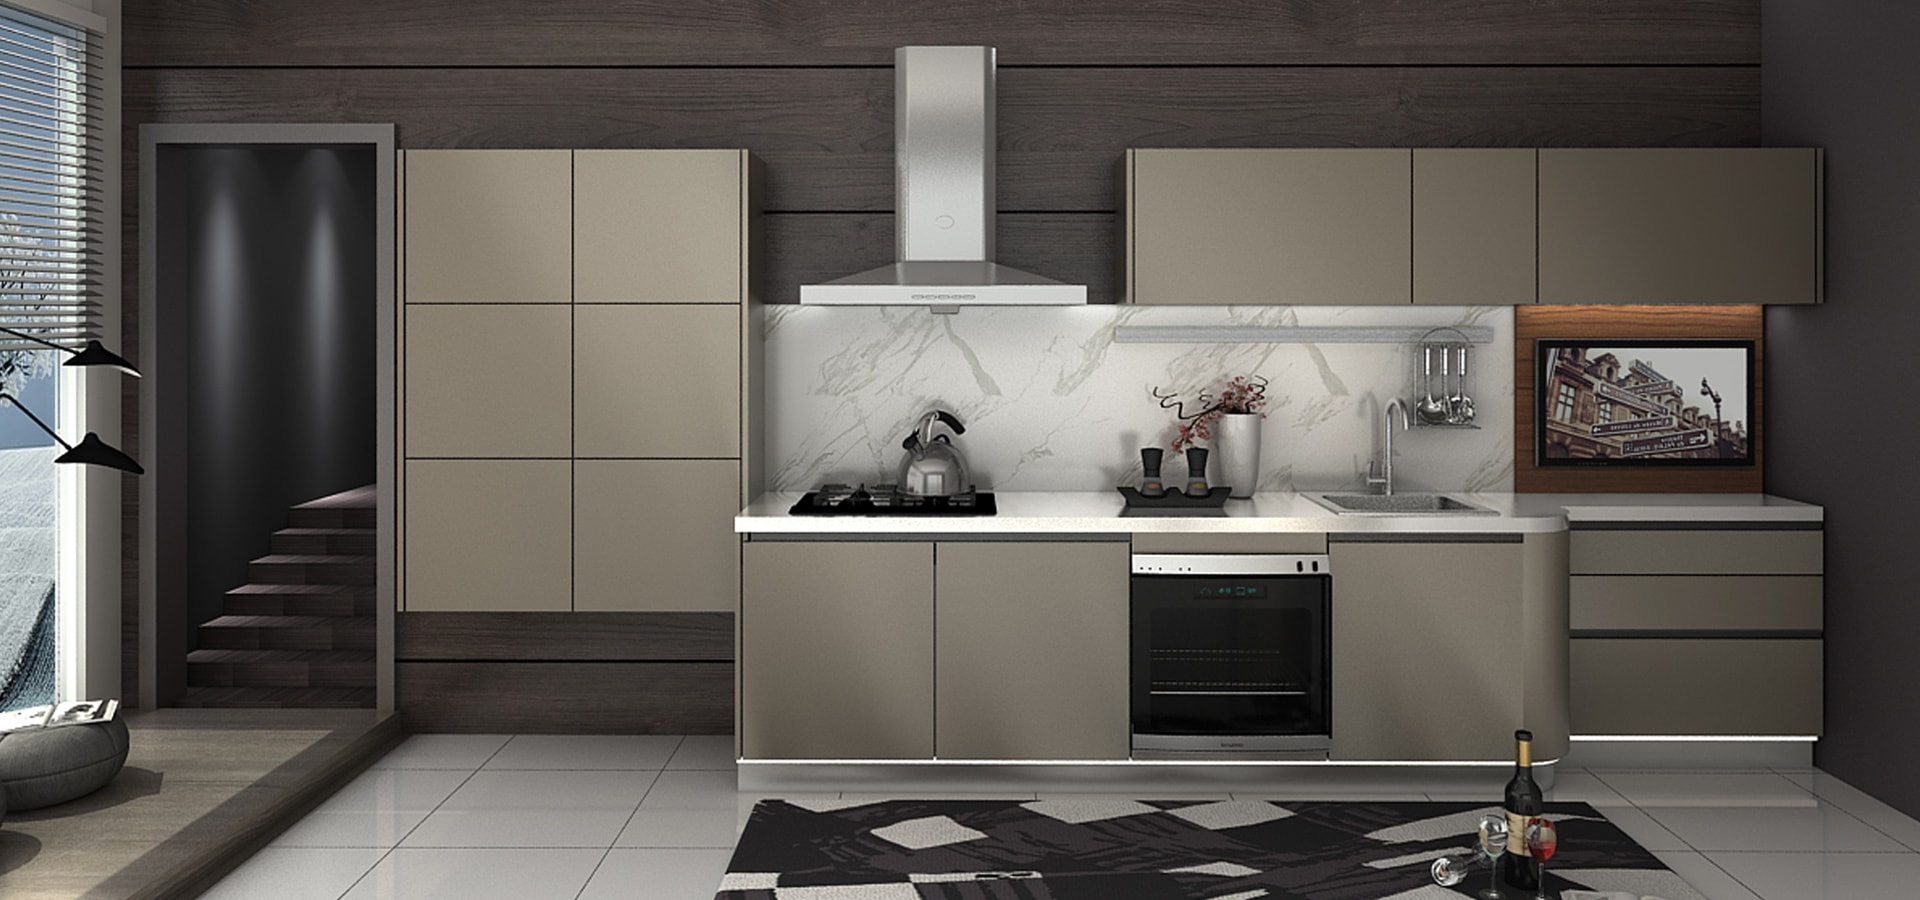 Baineng High End Customized Kitchen Cabinet